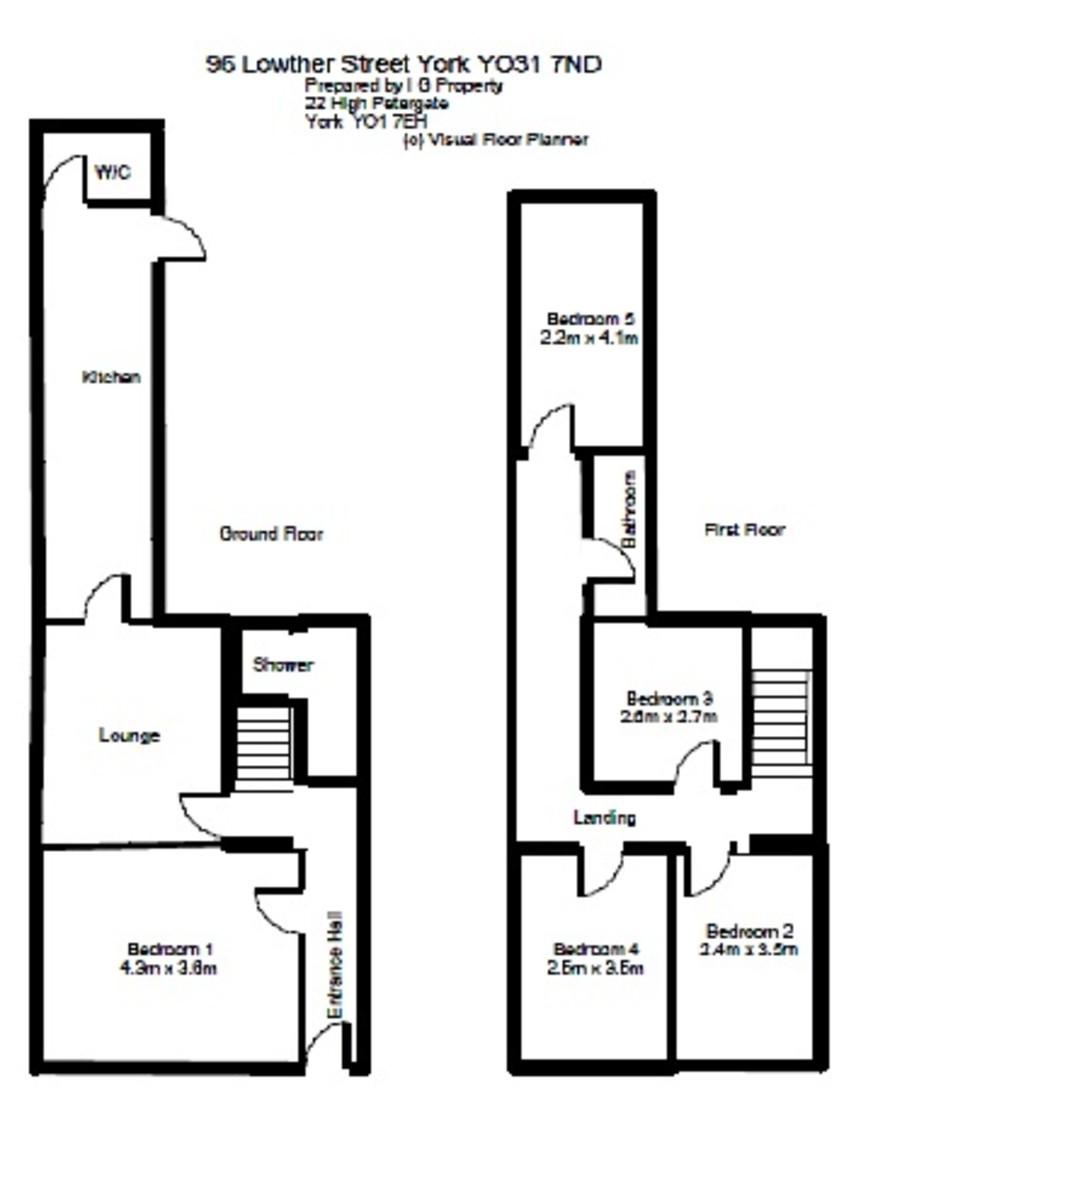 Student housing on Lowther Street, The Groves - floorplan 01